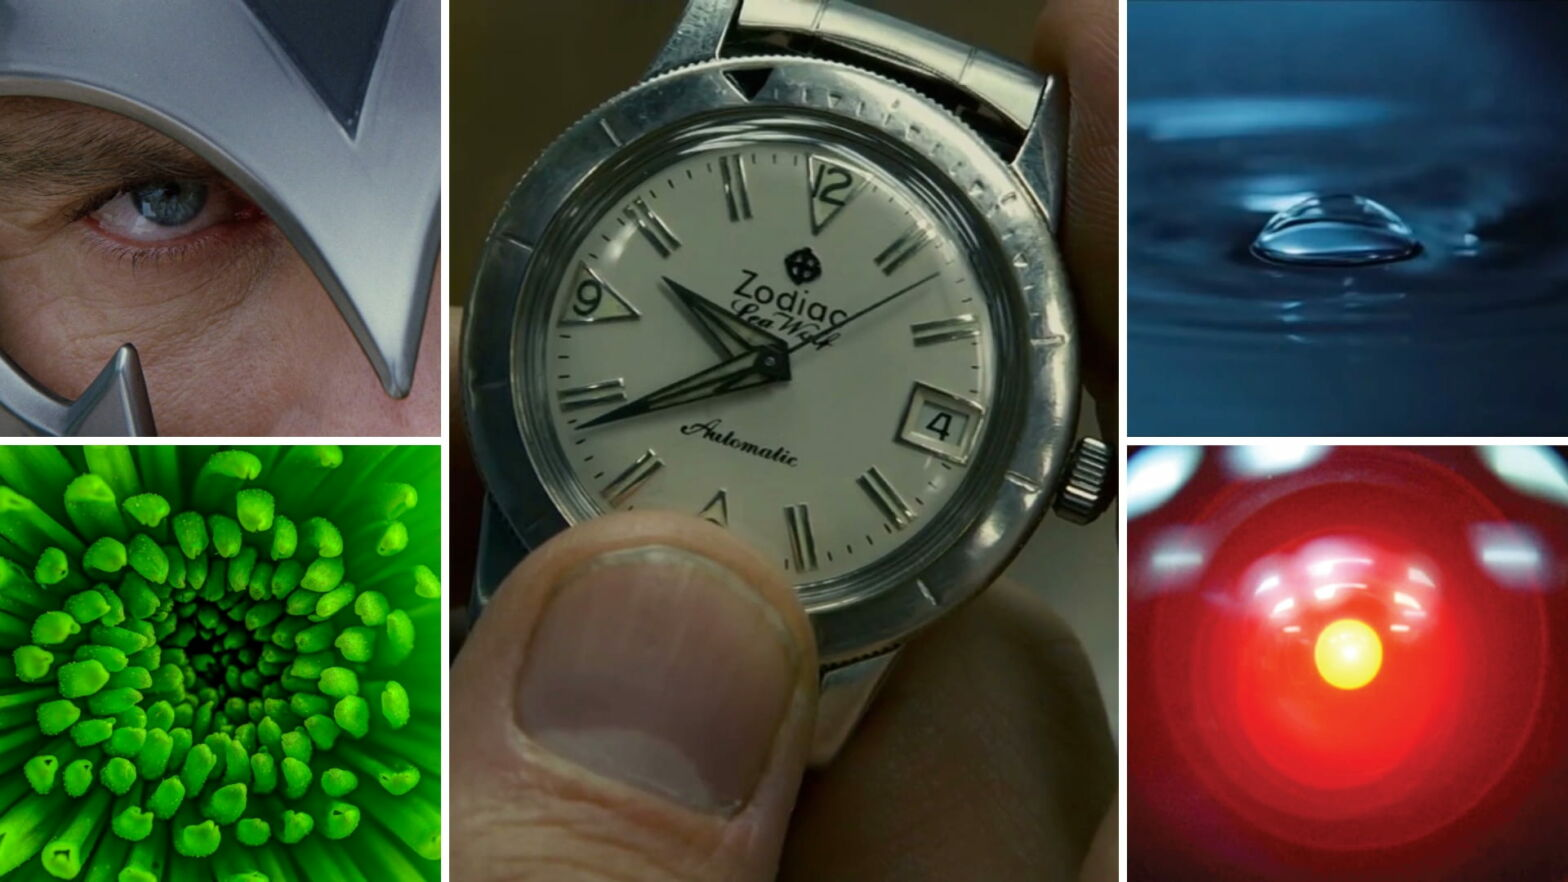 Extreme Close-Up Shots Creative Examples That Work - Featured